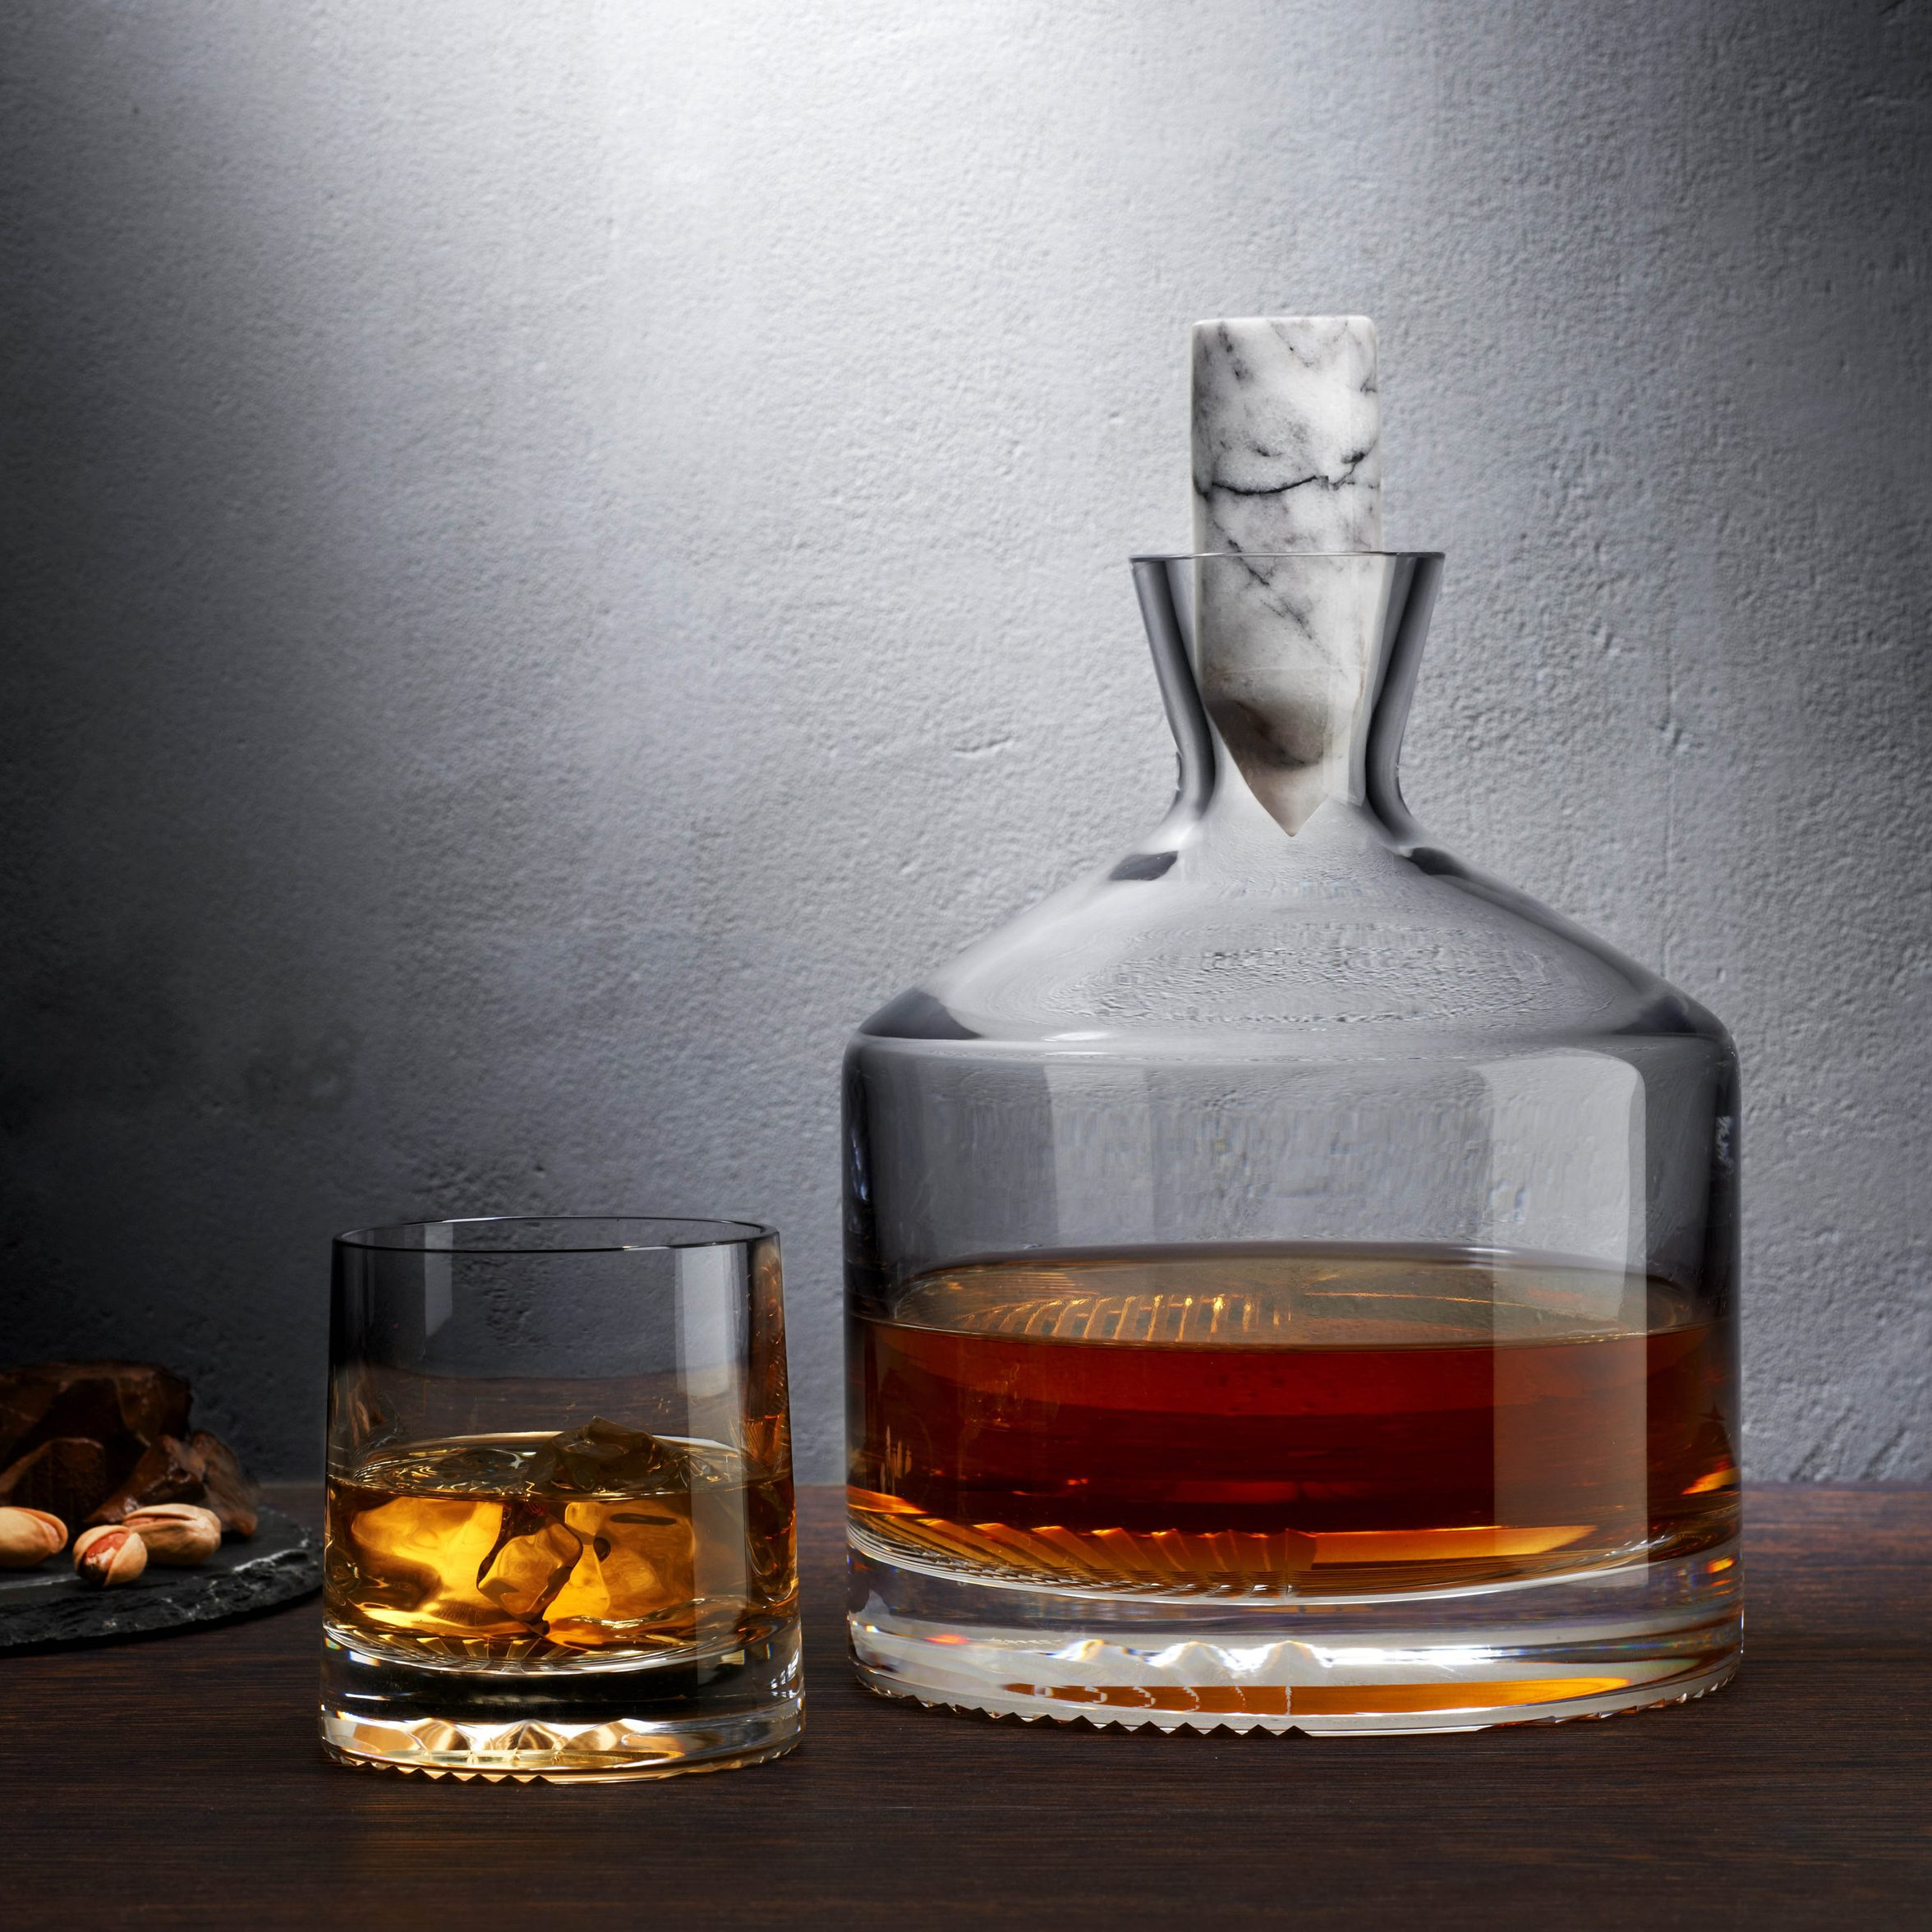 Alba whisky decanter by Joe Doucet for Nude